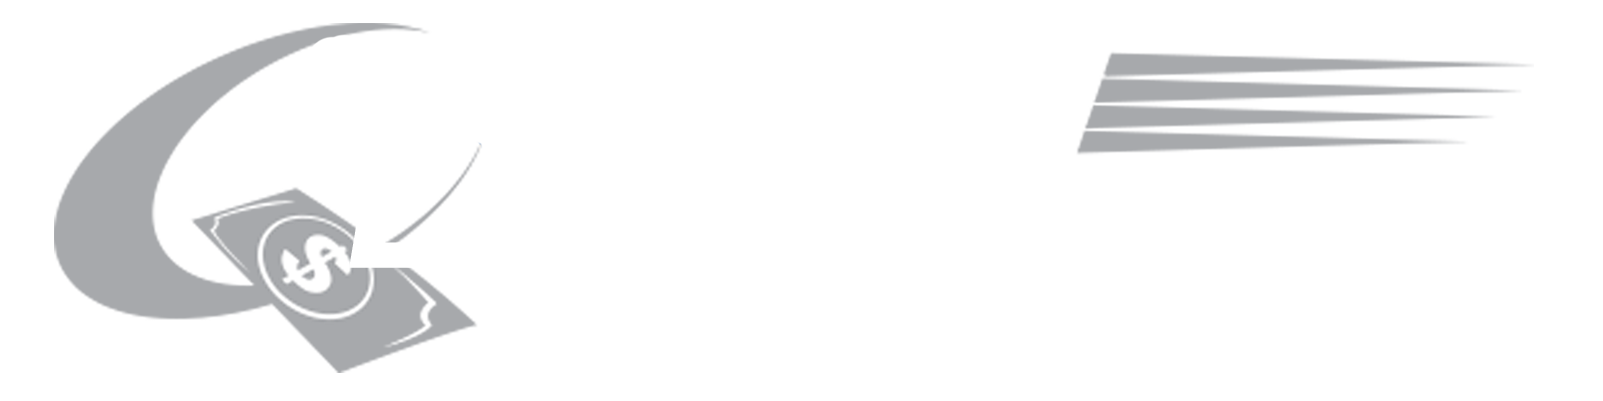 Payday Loans Now 24h